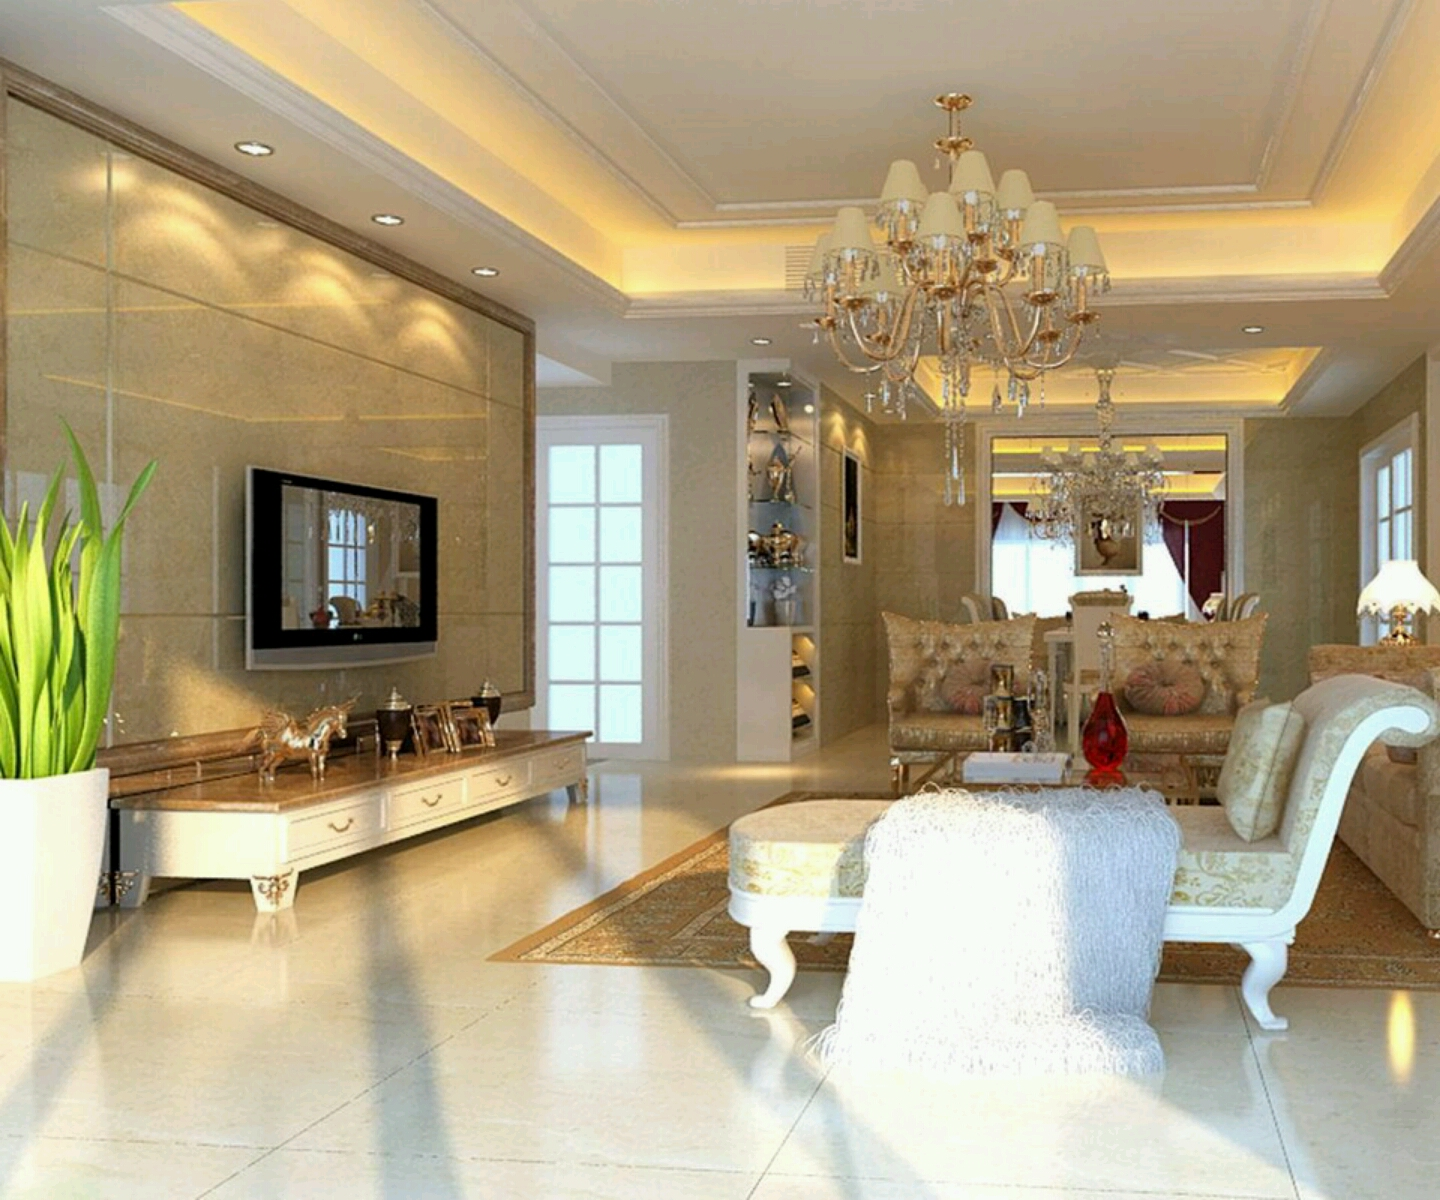 Luxury Homes Interior Decoration Living Room Designs Ideas: New Home Designs Latest.: Luxury Homes Interior Decoration